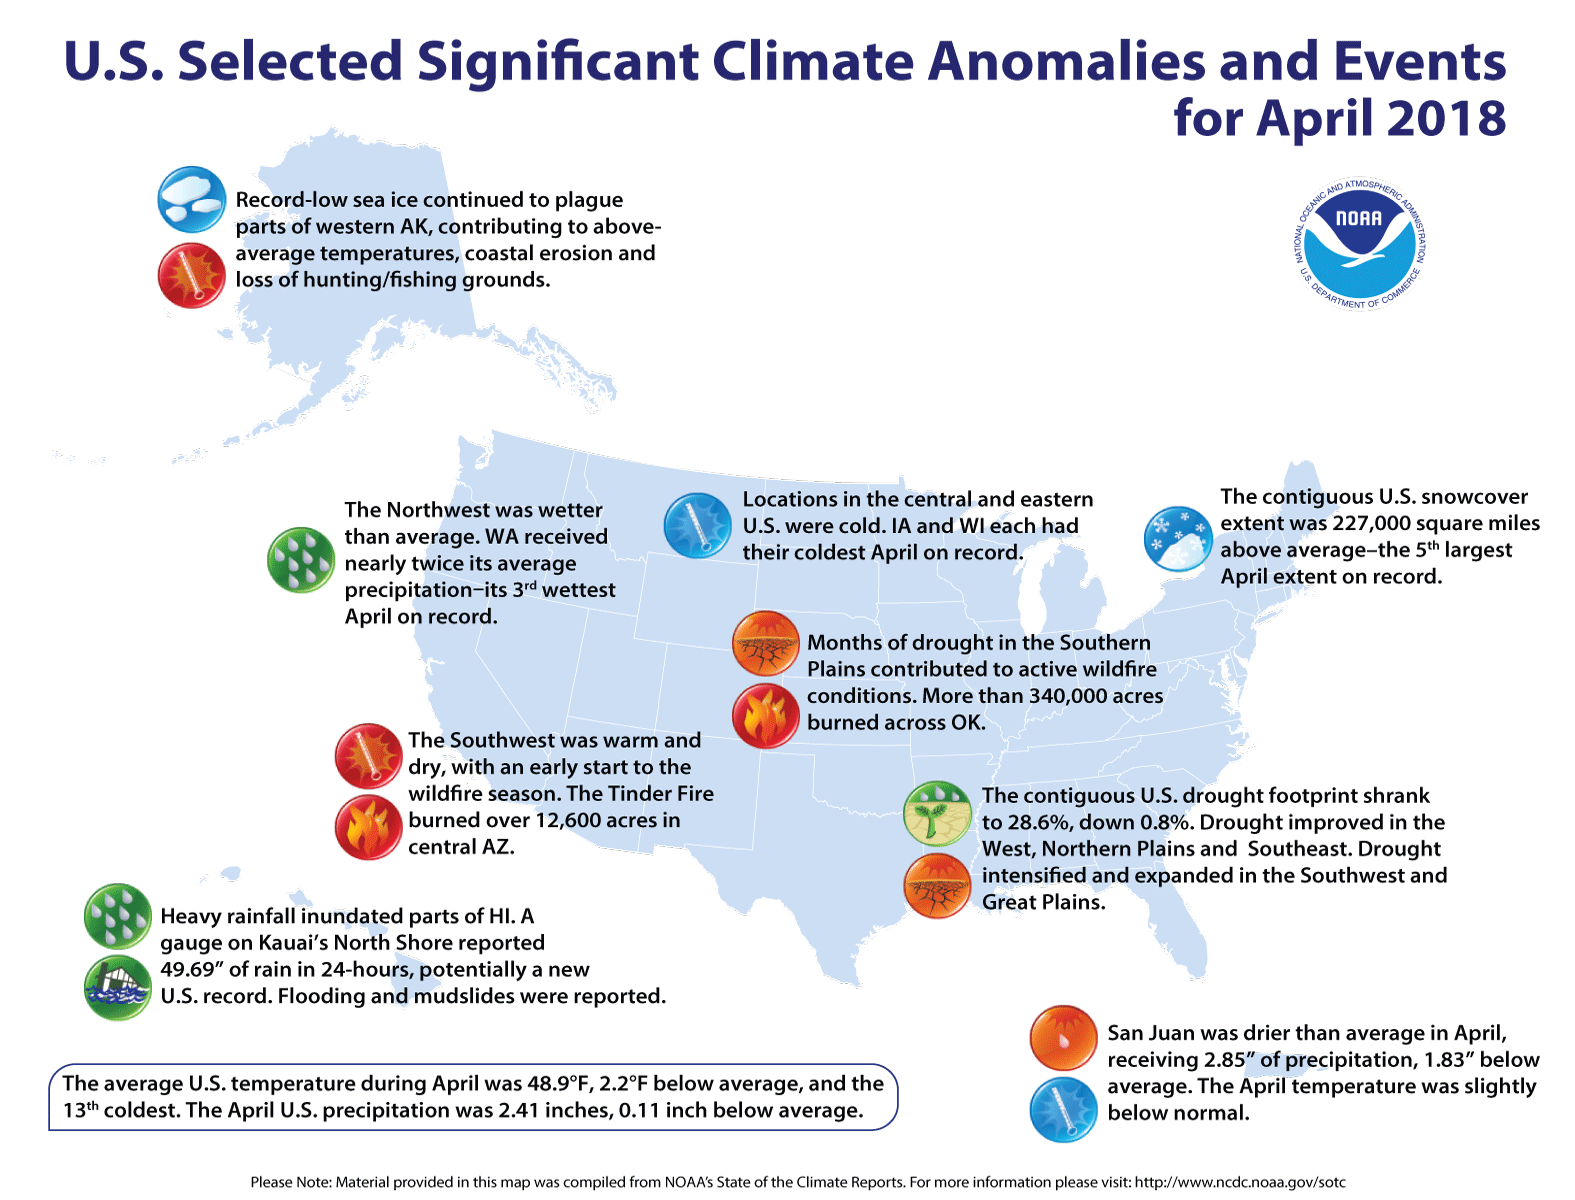 https://www.ncei.noaa.gov/sites/default/files/sites/default/files/april-2018-us-significant-events-map.png